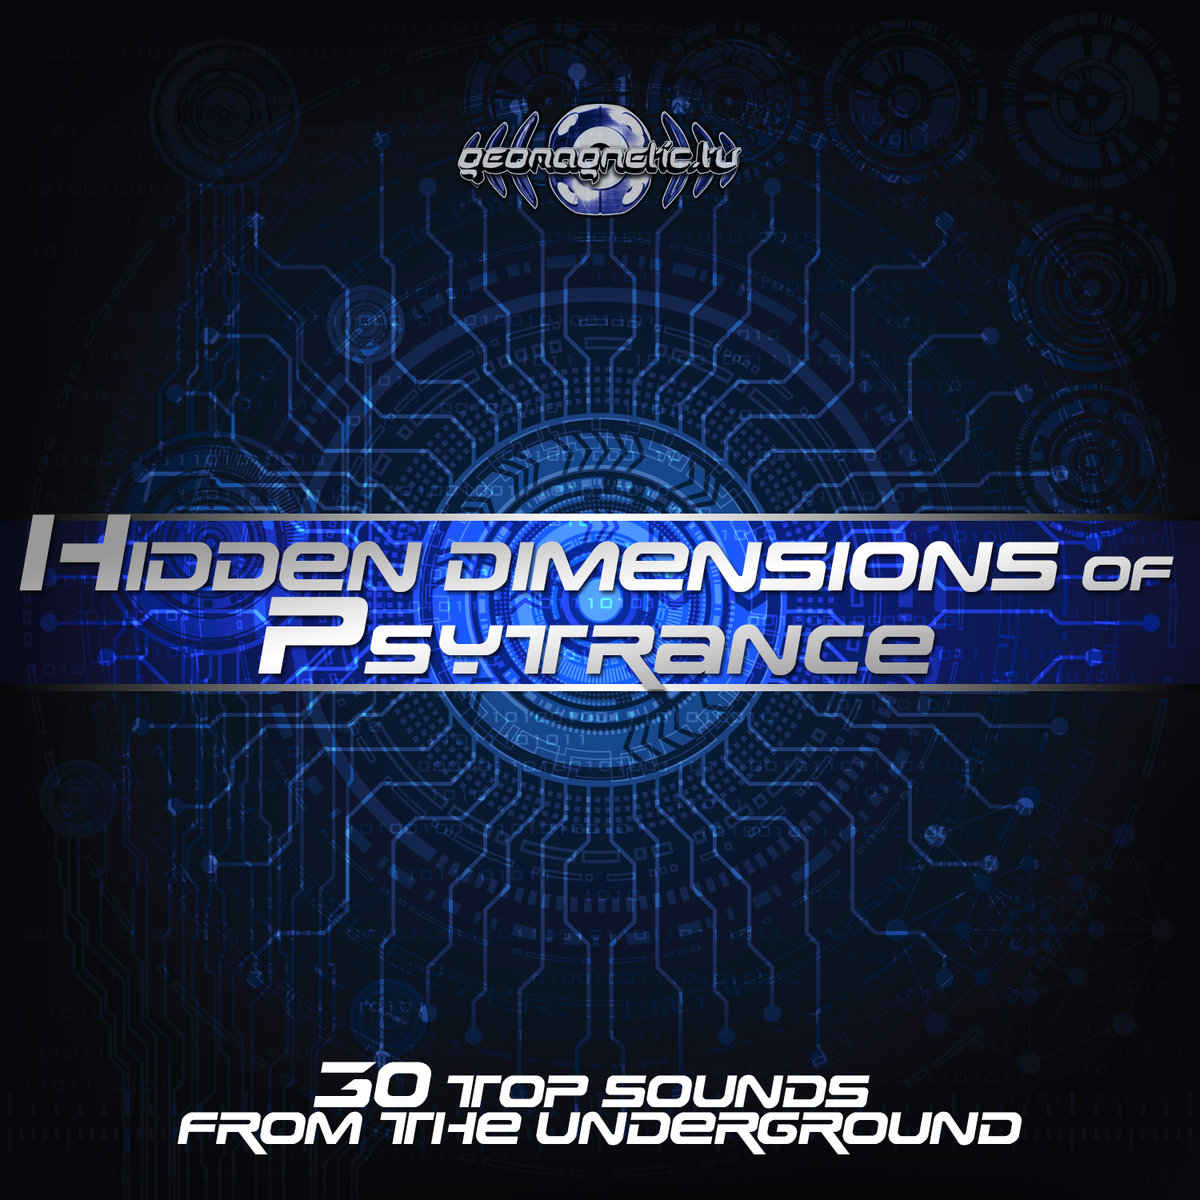 David Shanti - Base 417 @ 'Various Artists - Hidden Dimensions of Psytrance (30 Top Sounds From The Underground)' album (electronic, goa)